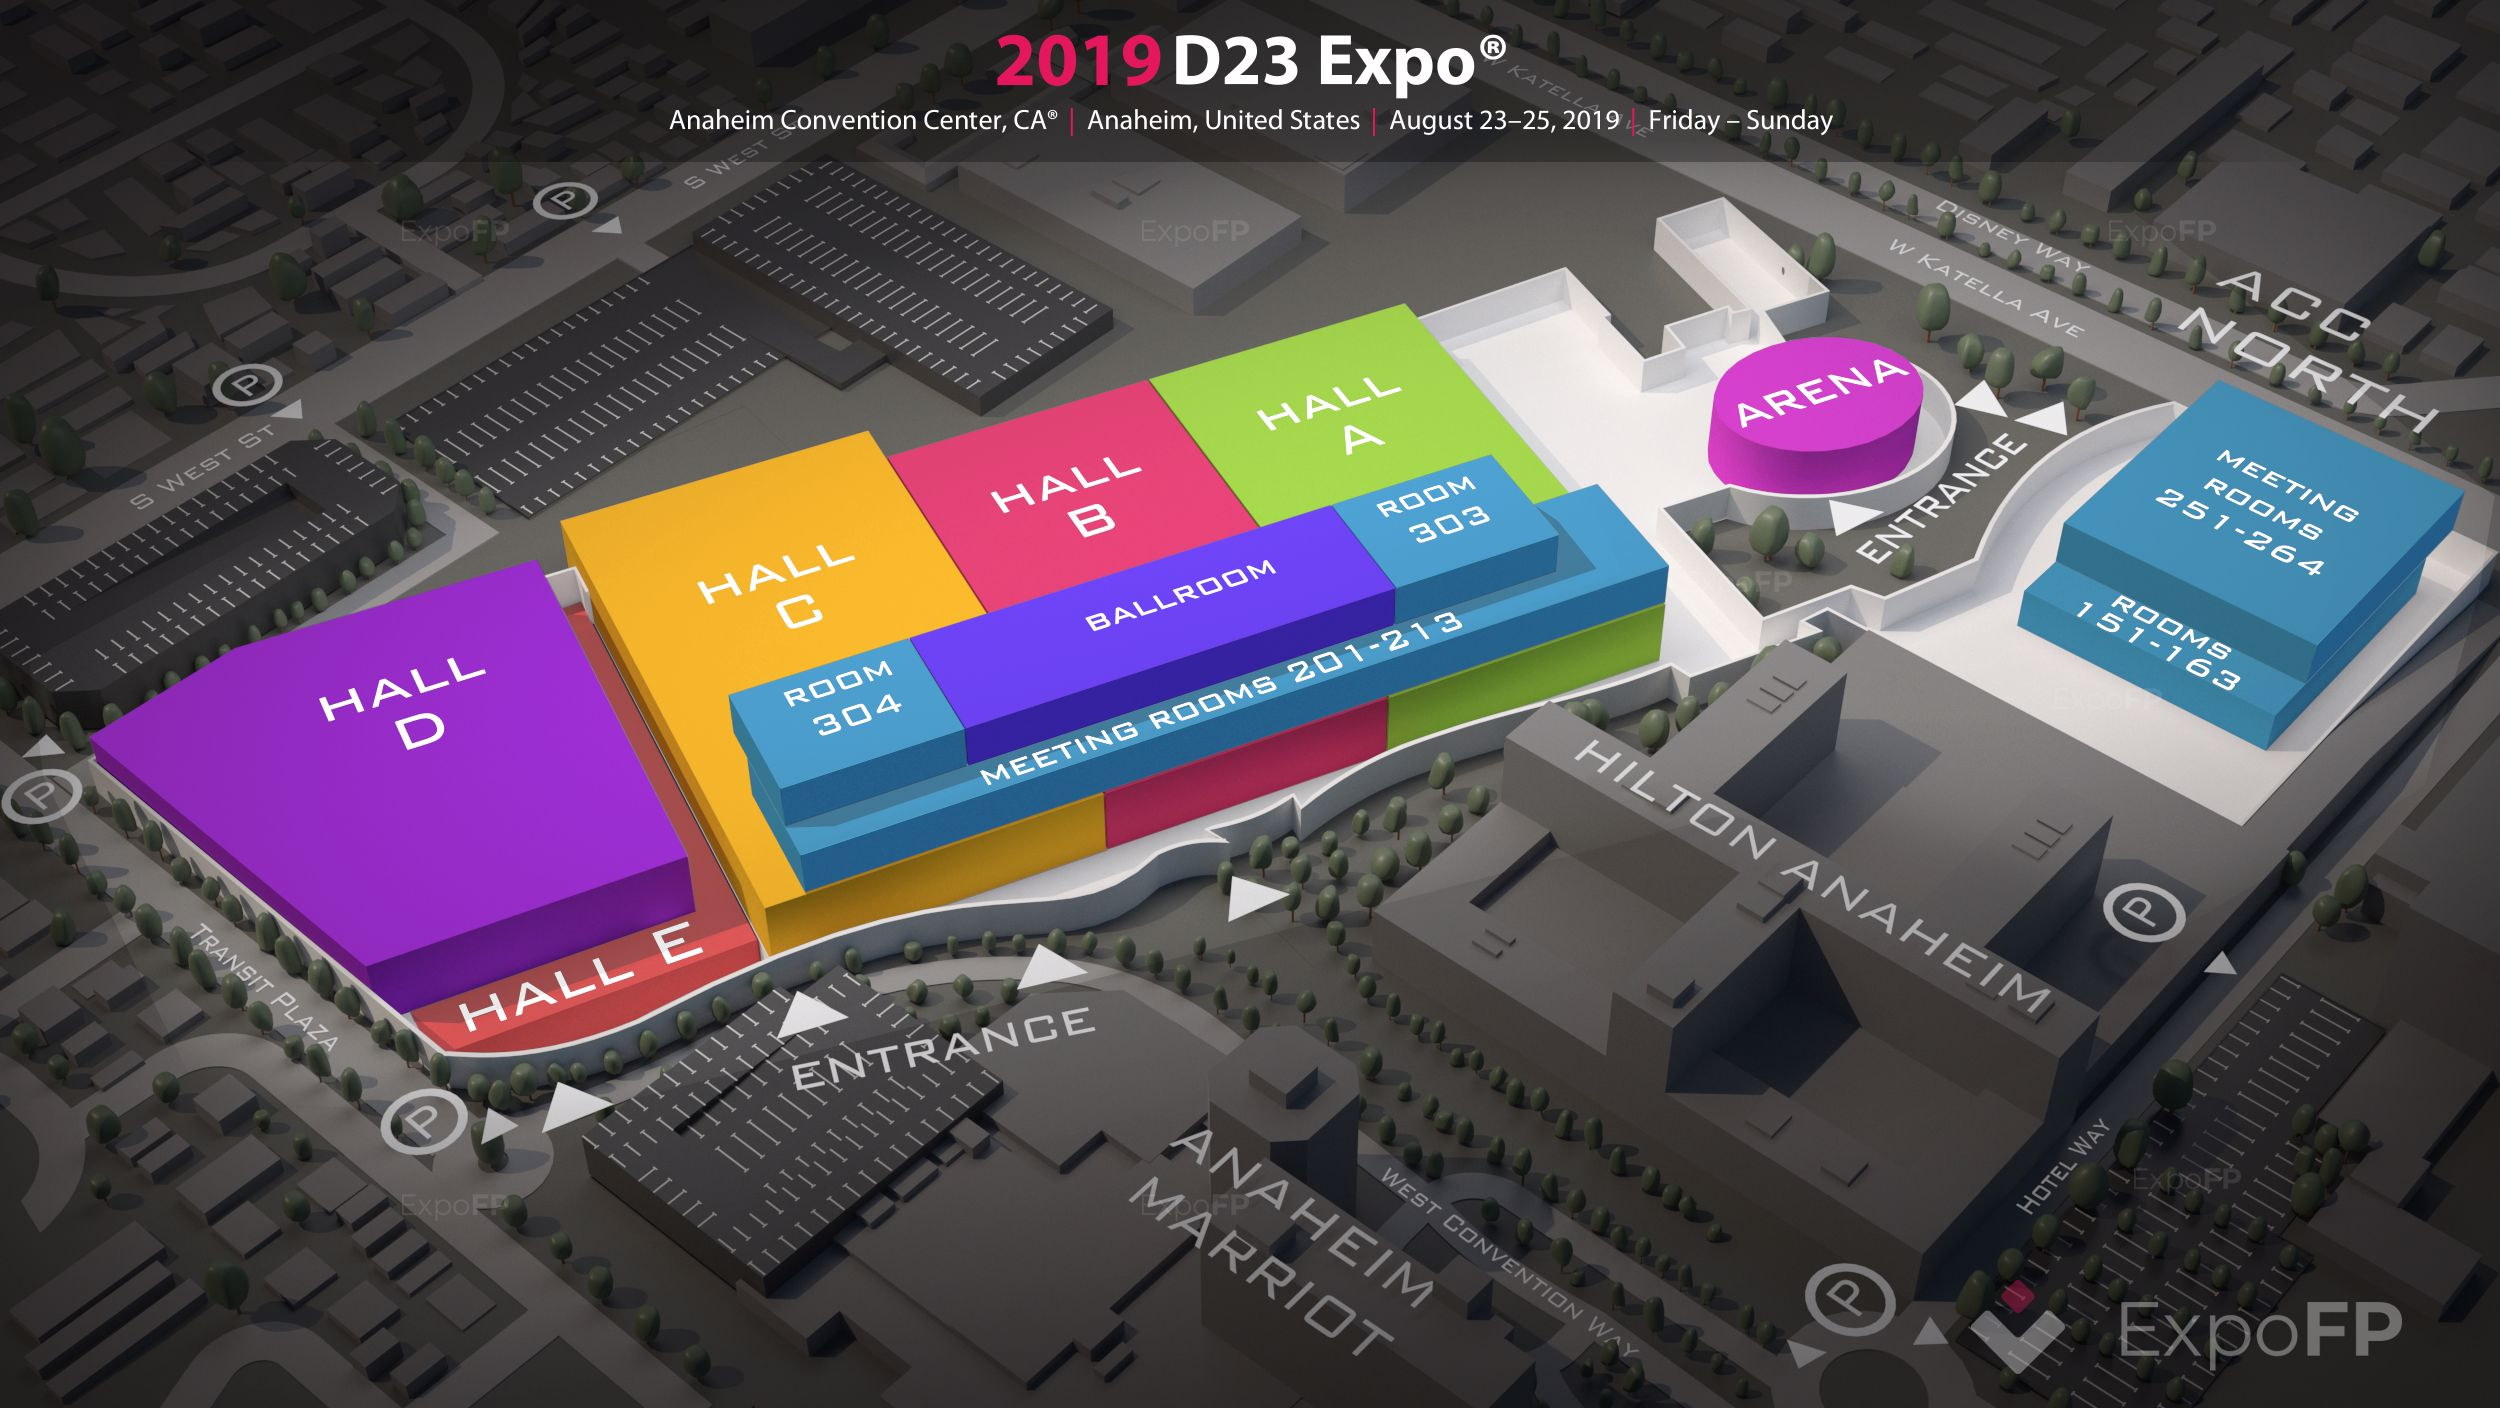 D23 Expo 2019 In Anaheim Convention Center Ca